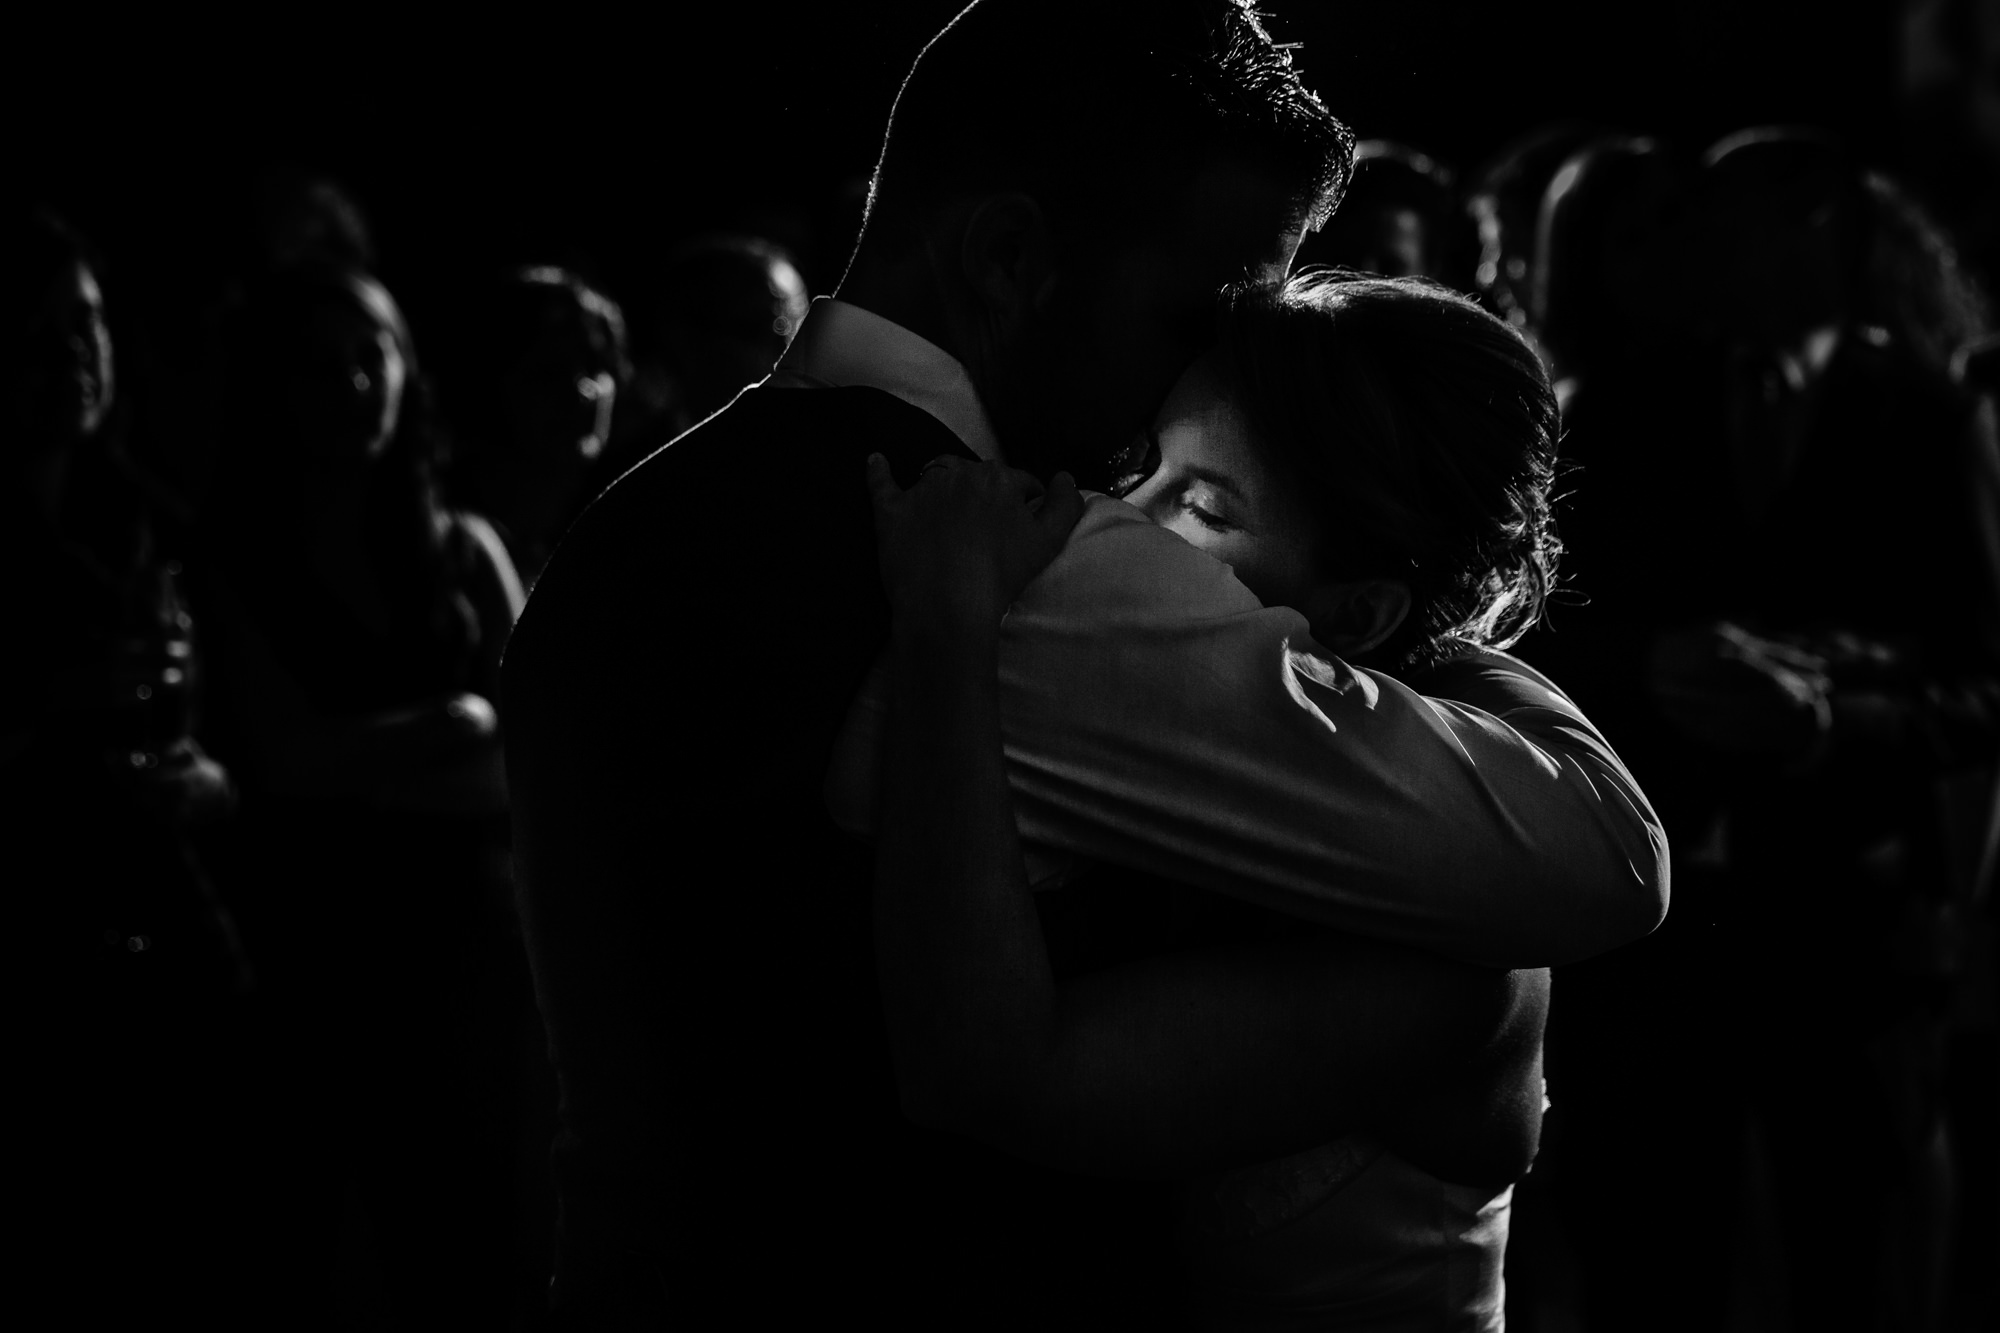 First dance low light photo by Yves Schepers